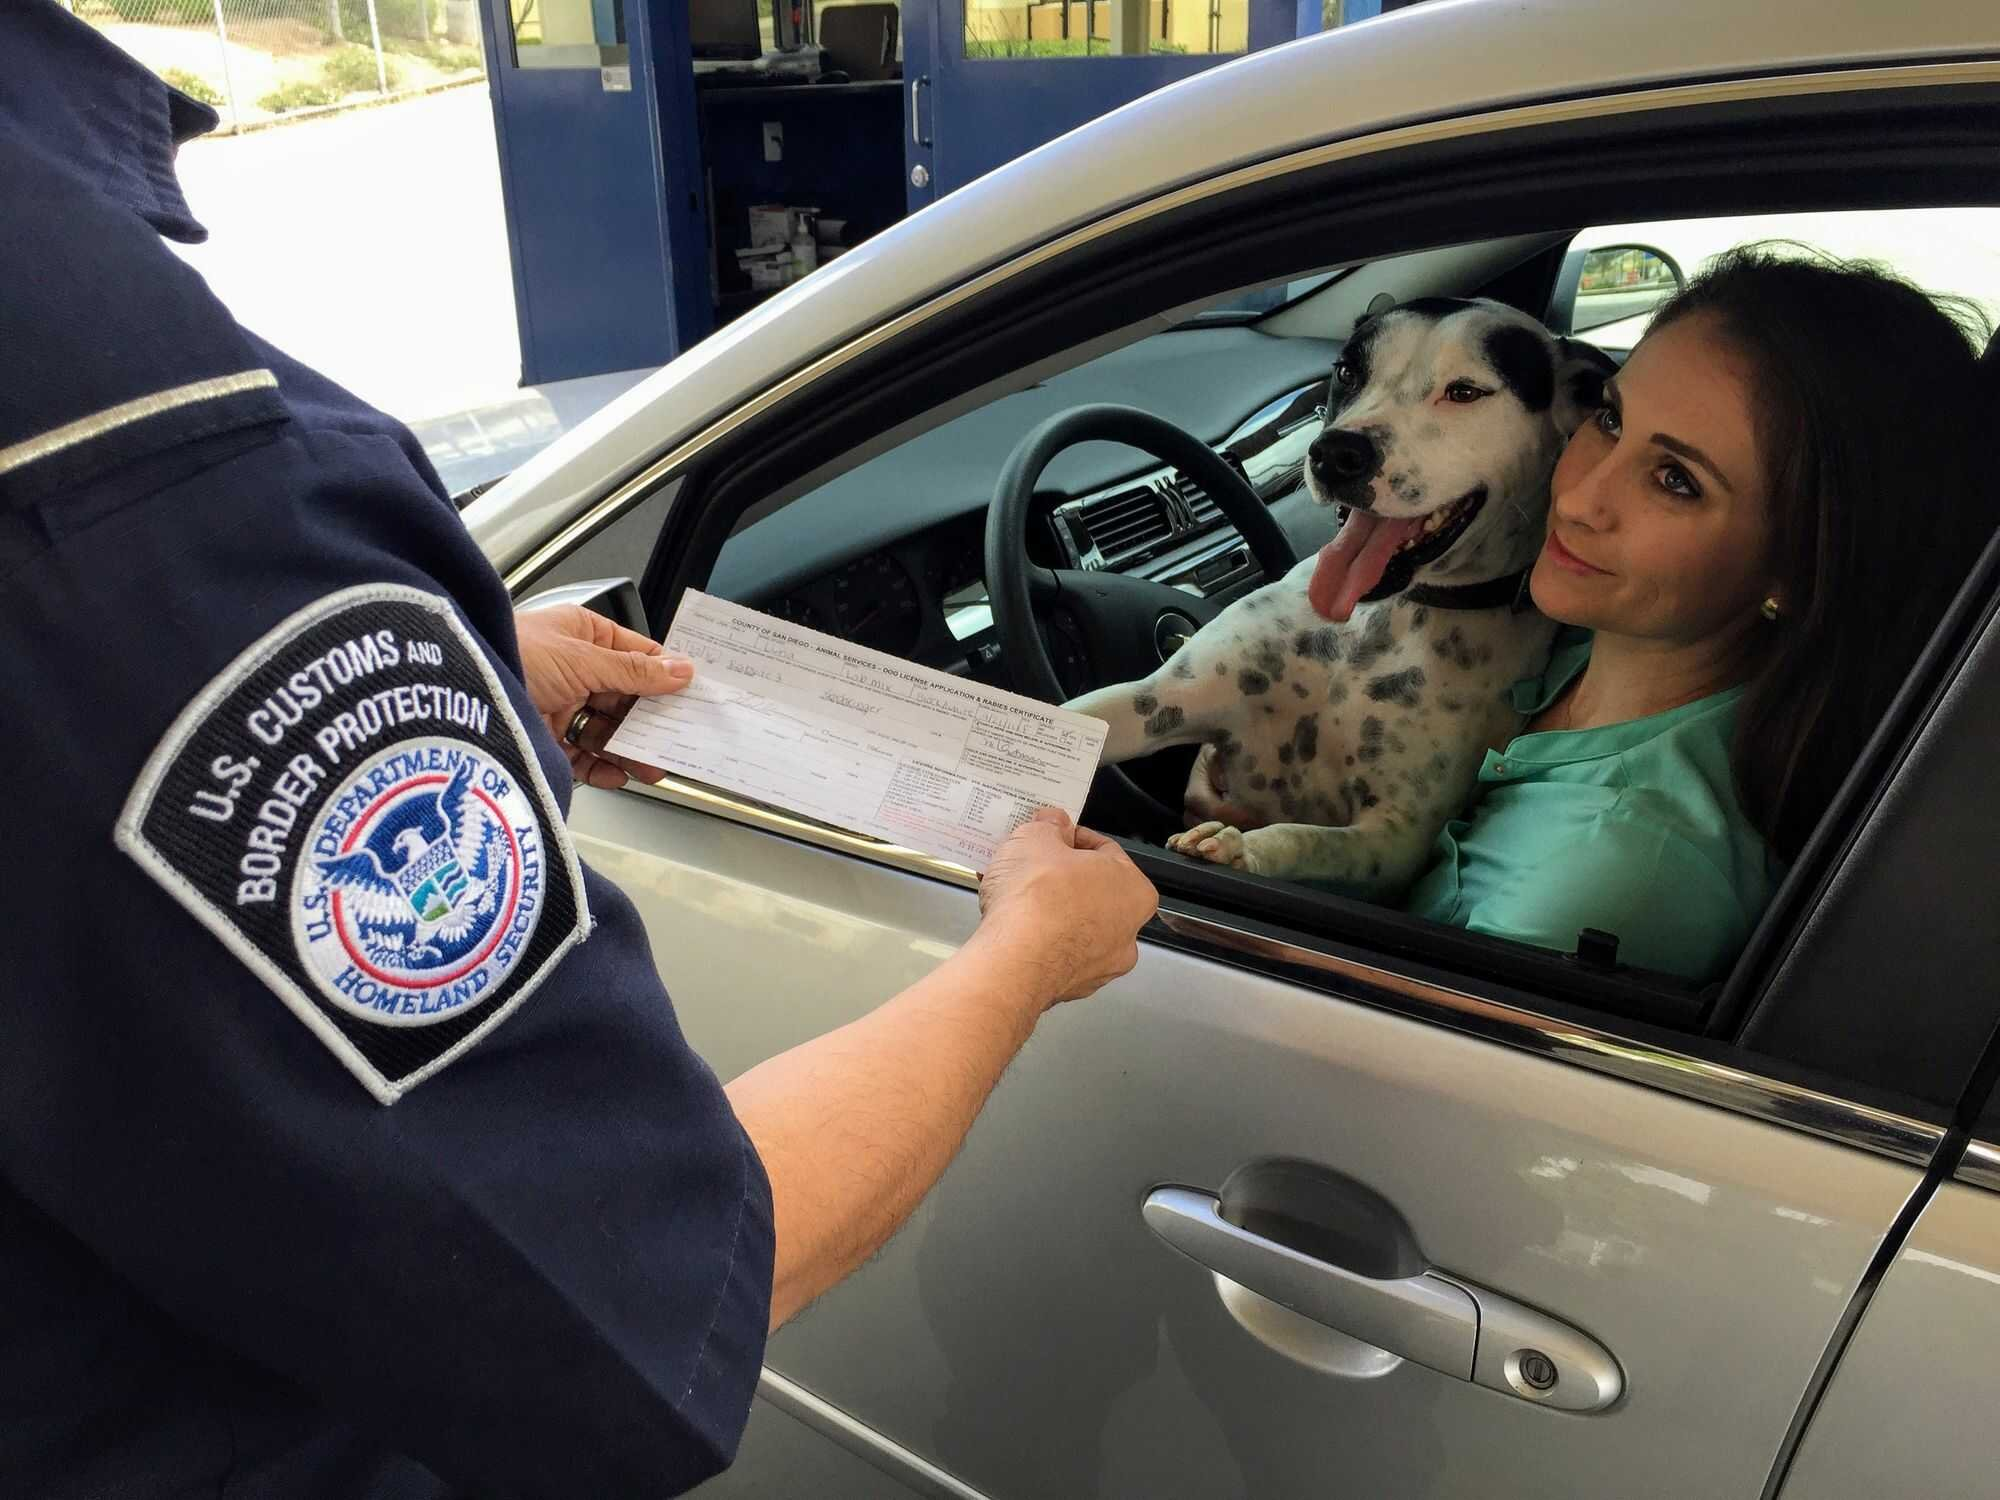 Woman and dog in car checked by US Border Protection